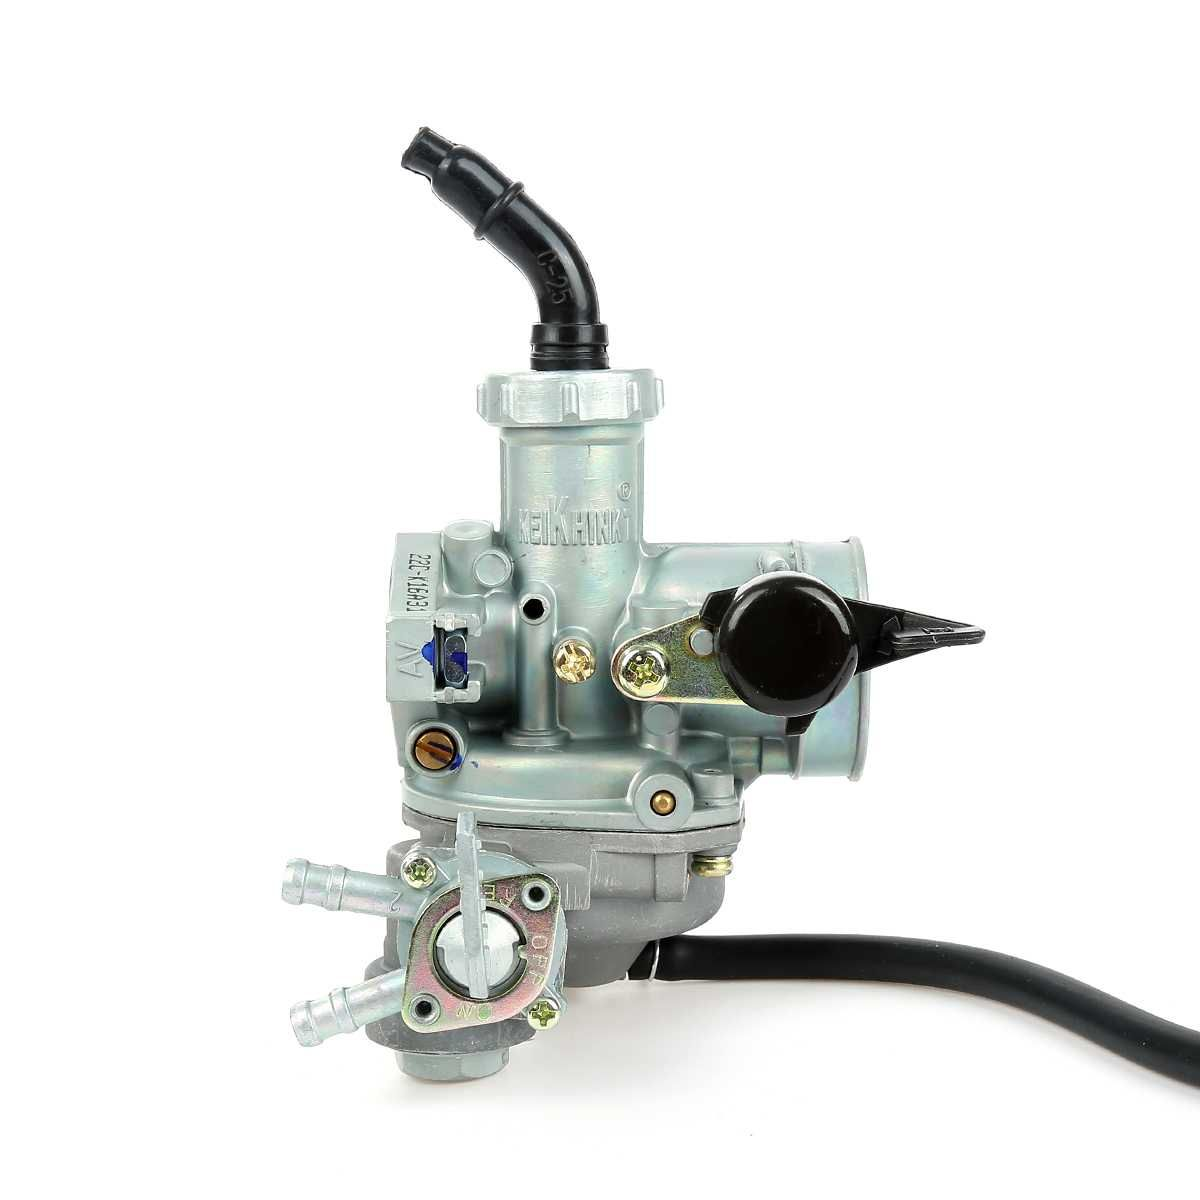 CARB CARBURETOR TYPE CARTER ENGINE fit for  Carb Trail CT90 CT-90 ATC125M